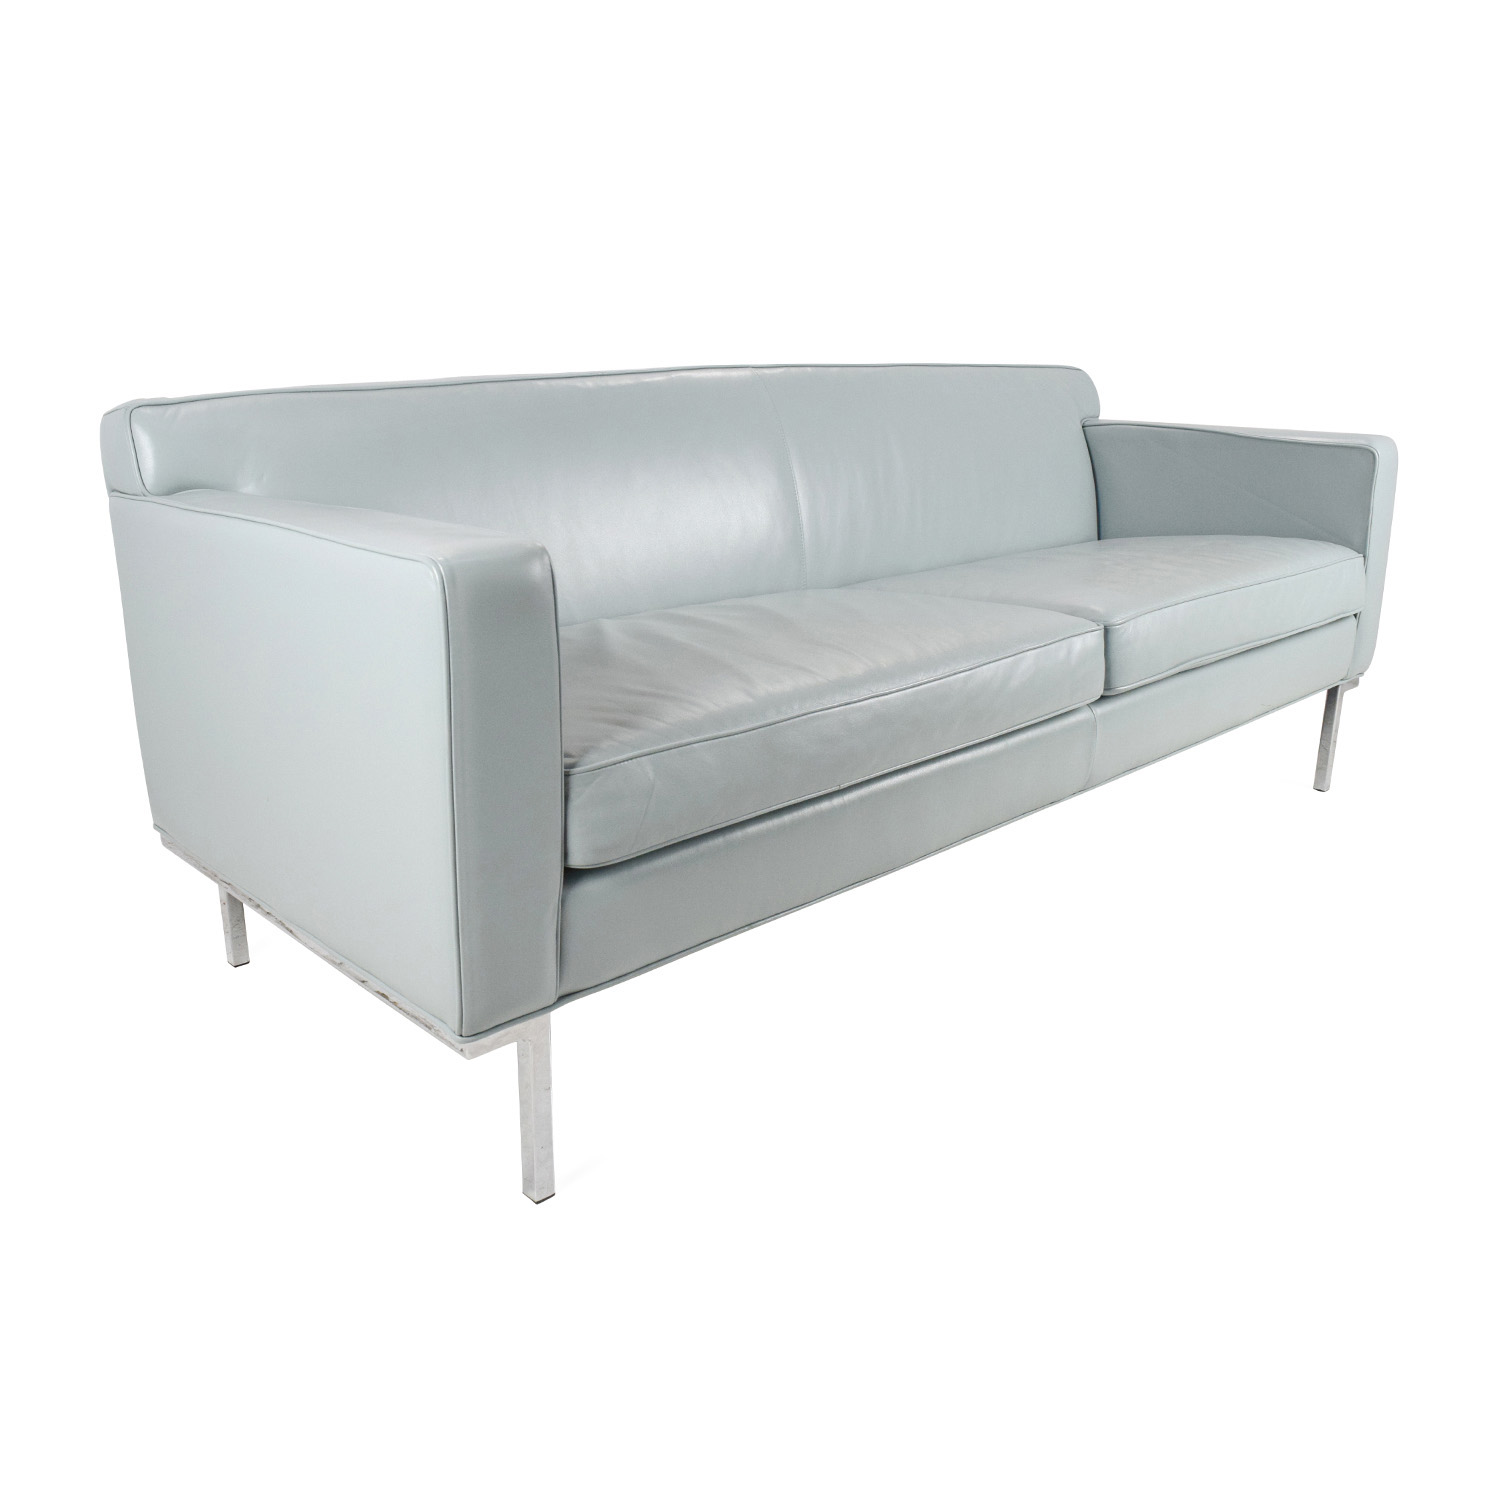 70 off design within reach design within reach theater for Classic sofa design